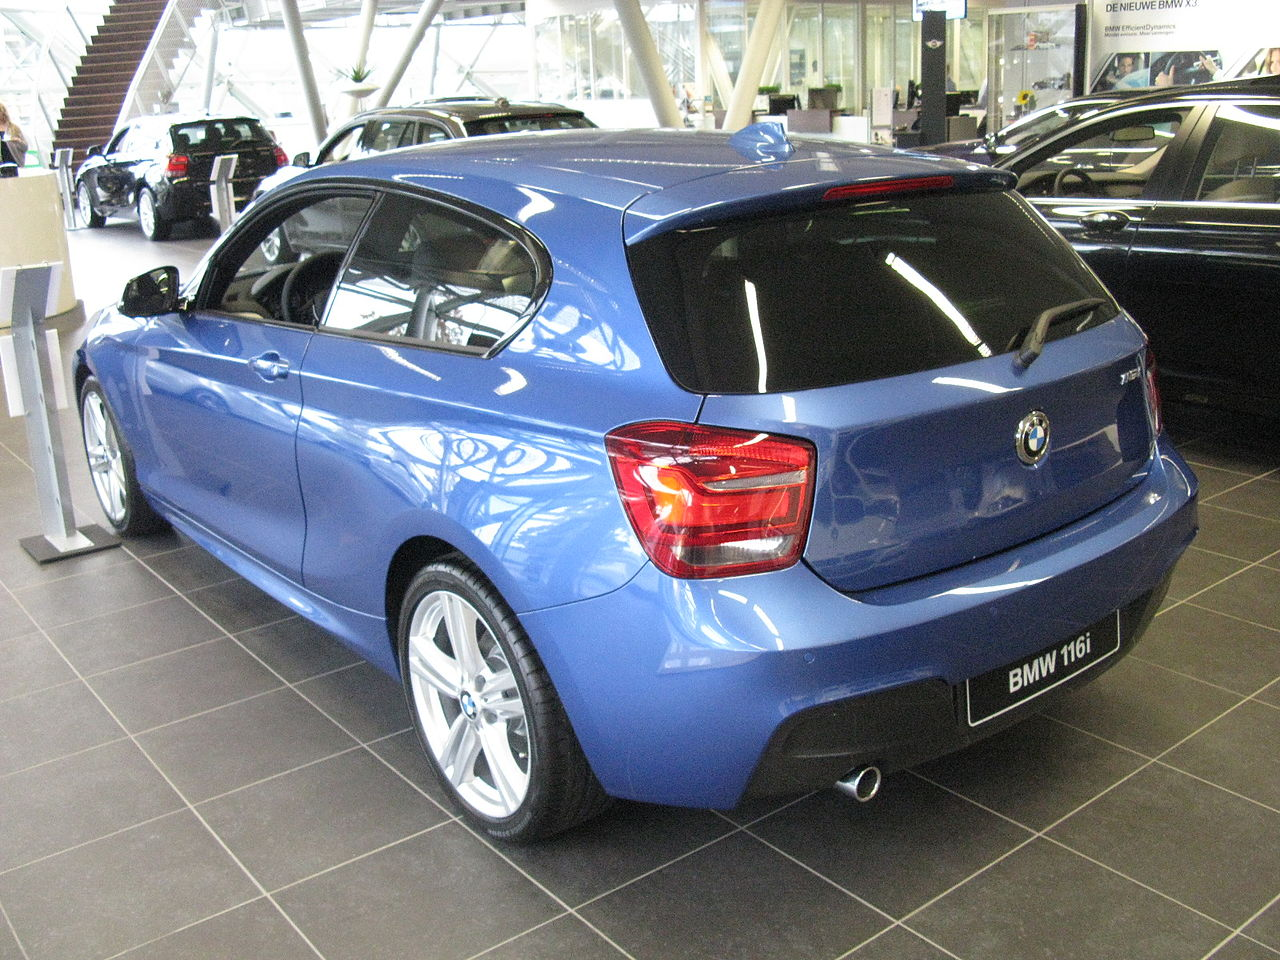 file:bmw 116i m sport (8101339876) - wikimedia commons